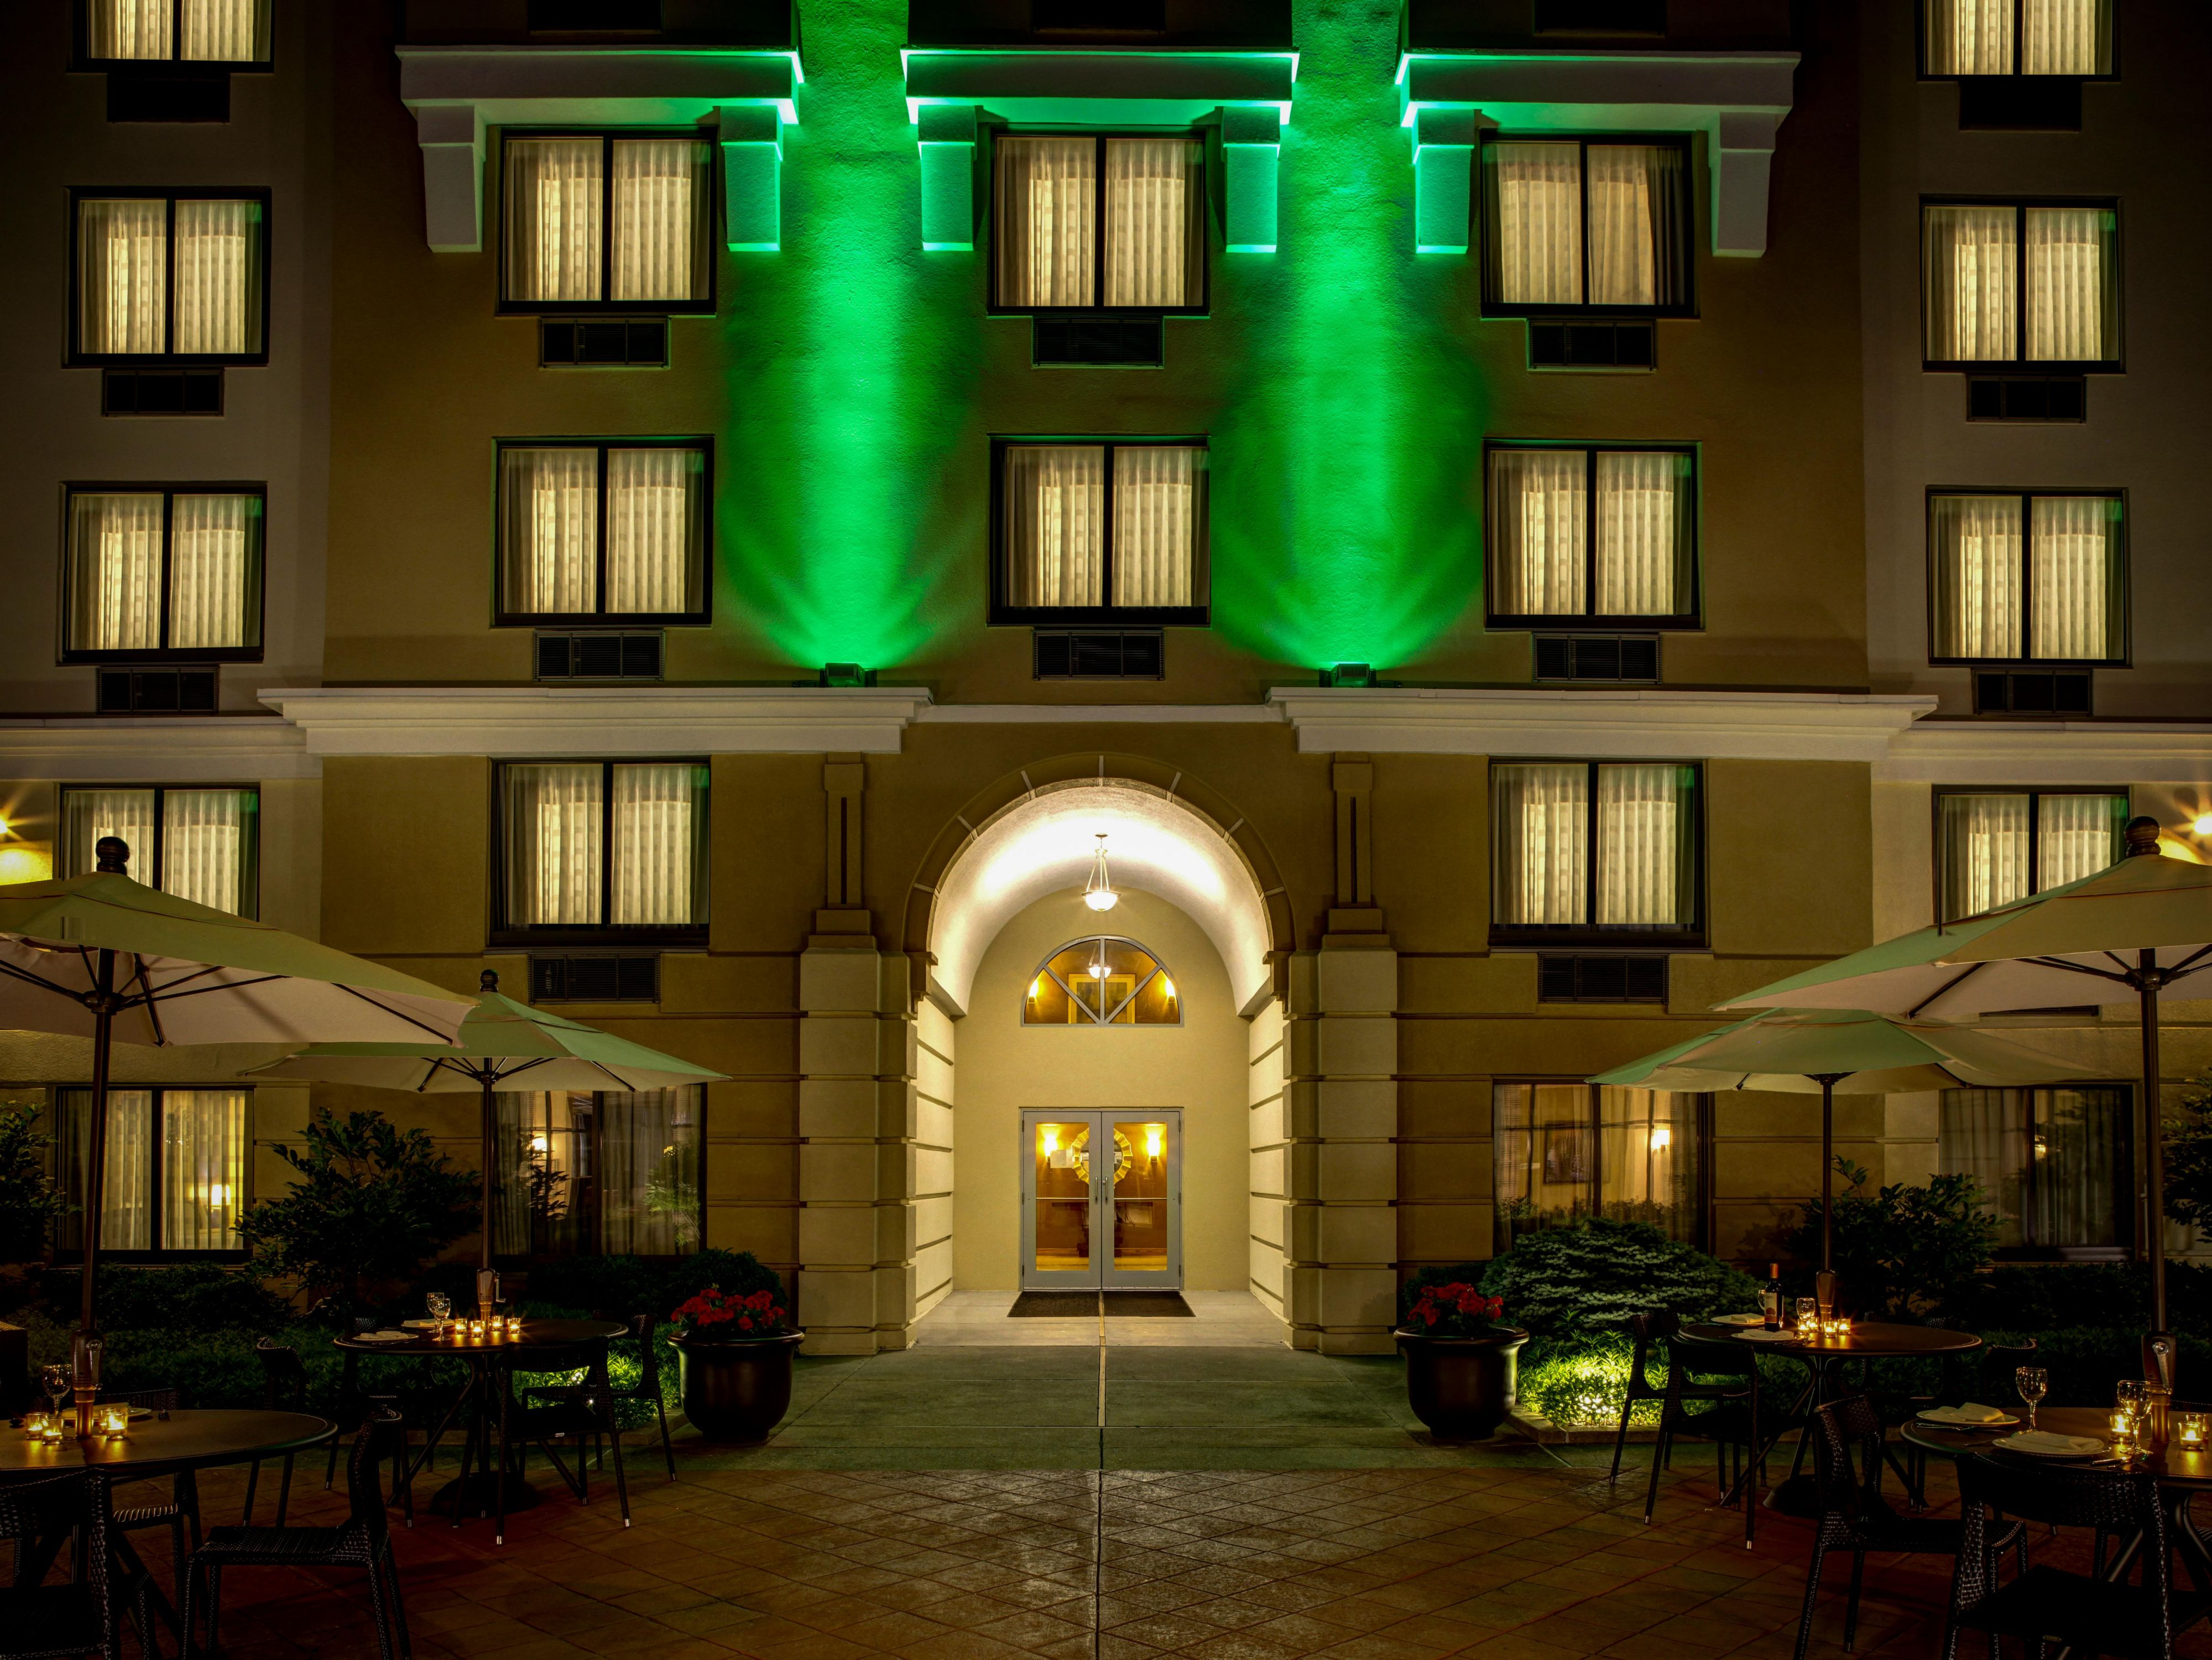 Enjoy an evening in our courtyard at the Holiday Inn Carmel